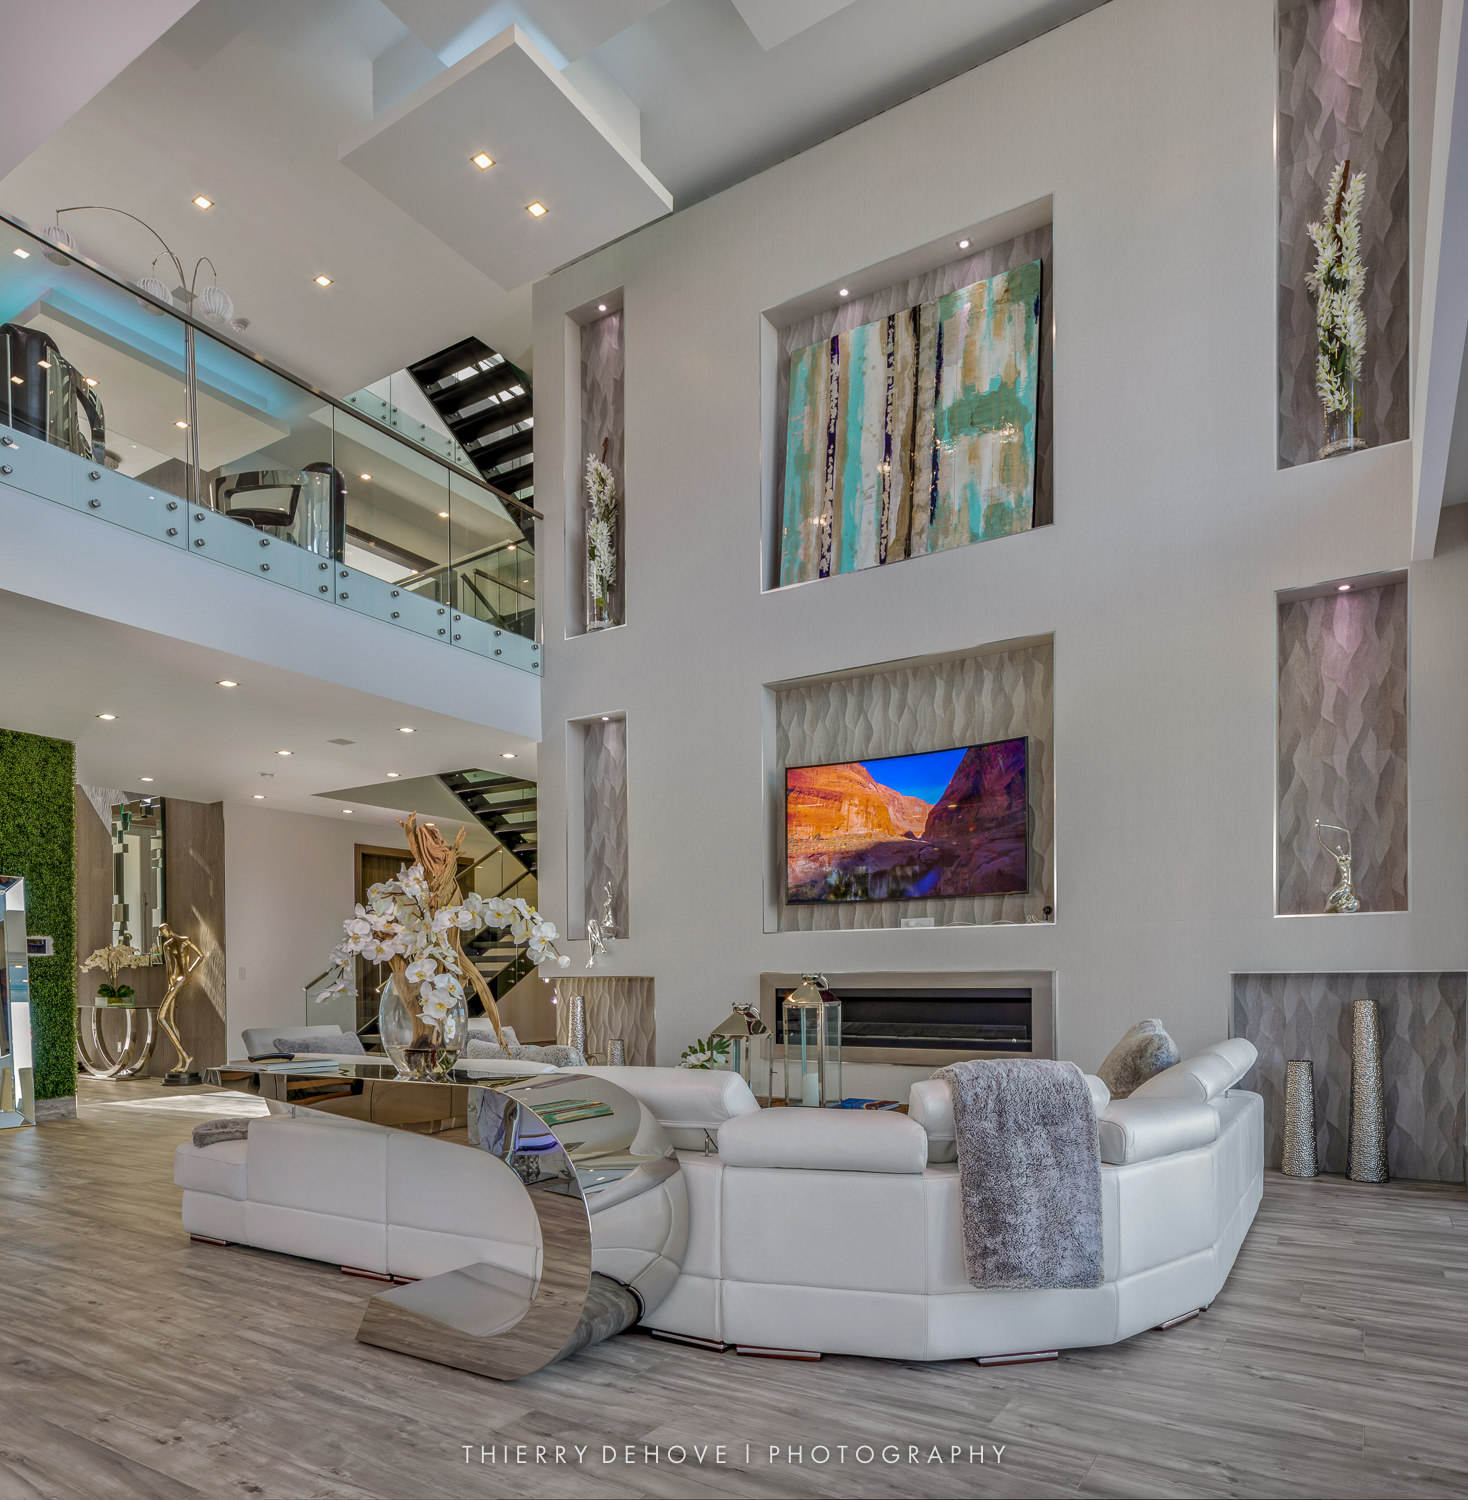 Home Interior Design Photography in Fort Lauderdale Welcome to